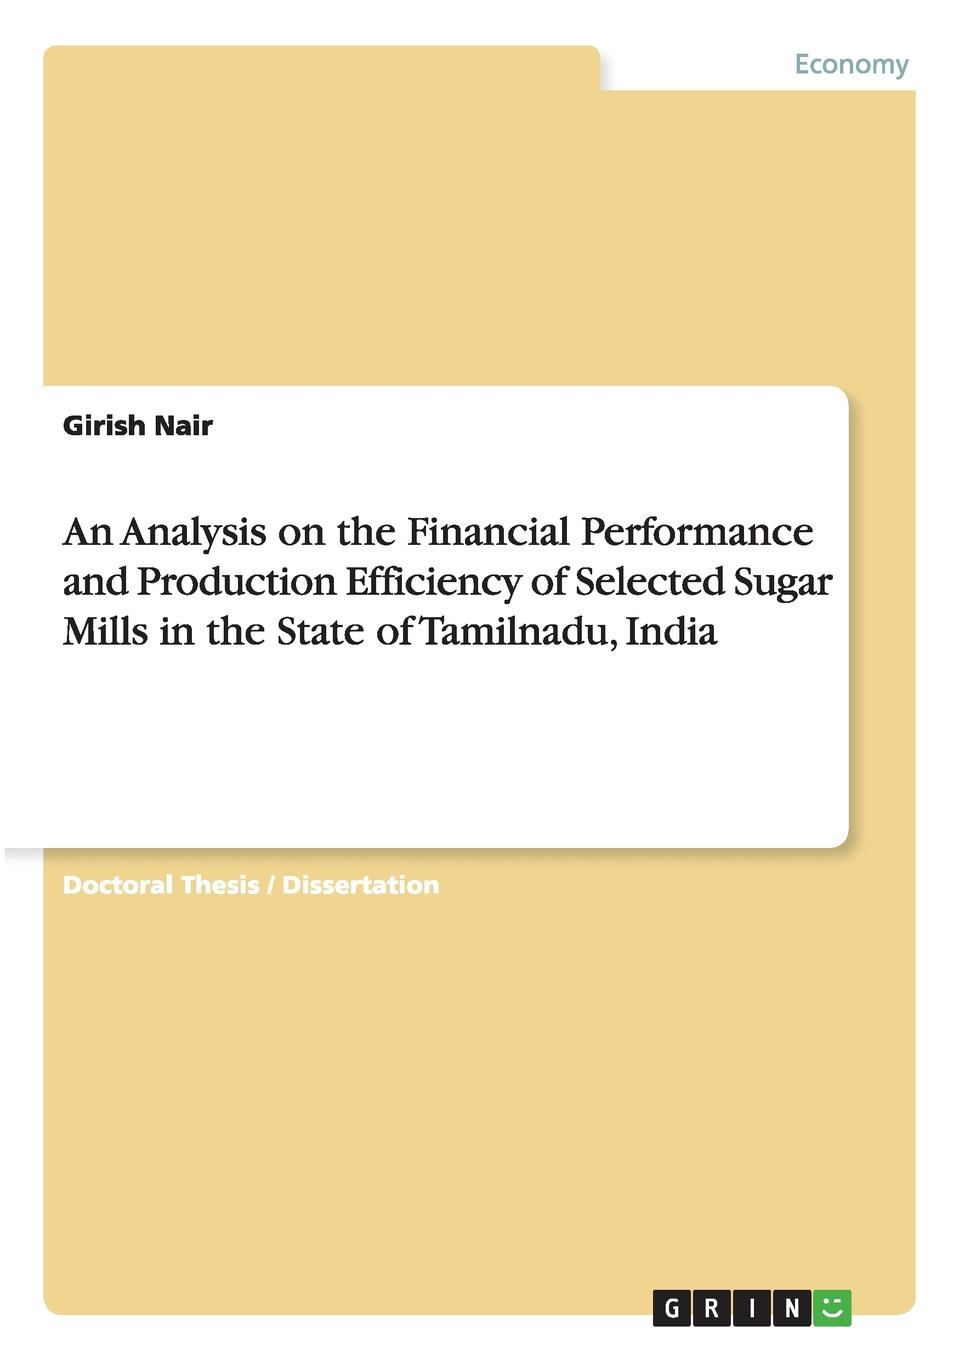 Girish Nair An Analysis on the Financial Performance and Production Efficiency of Selected Sugar Mills in the State of Tamilnadu, India fotios pasiouras efficiency and productivity growth modelling in the financial services industry